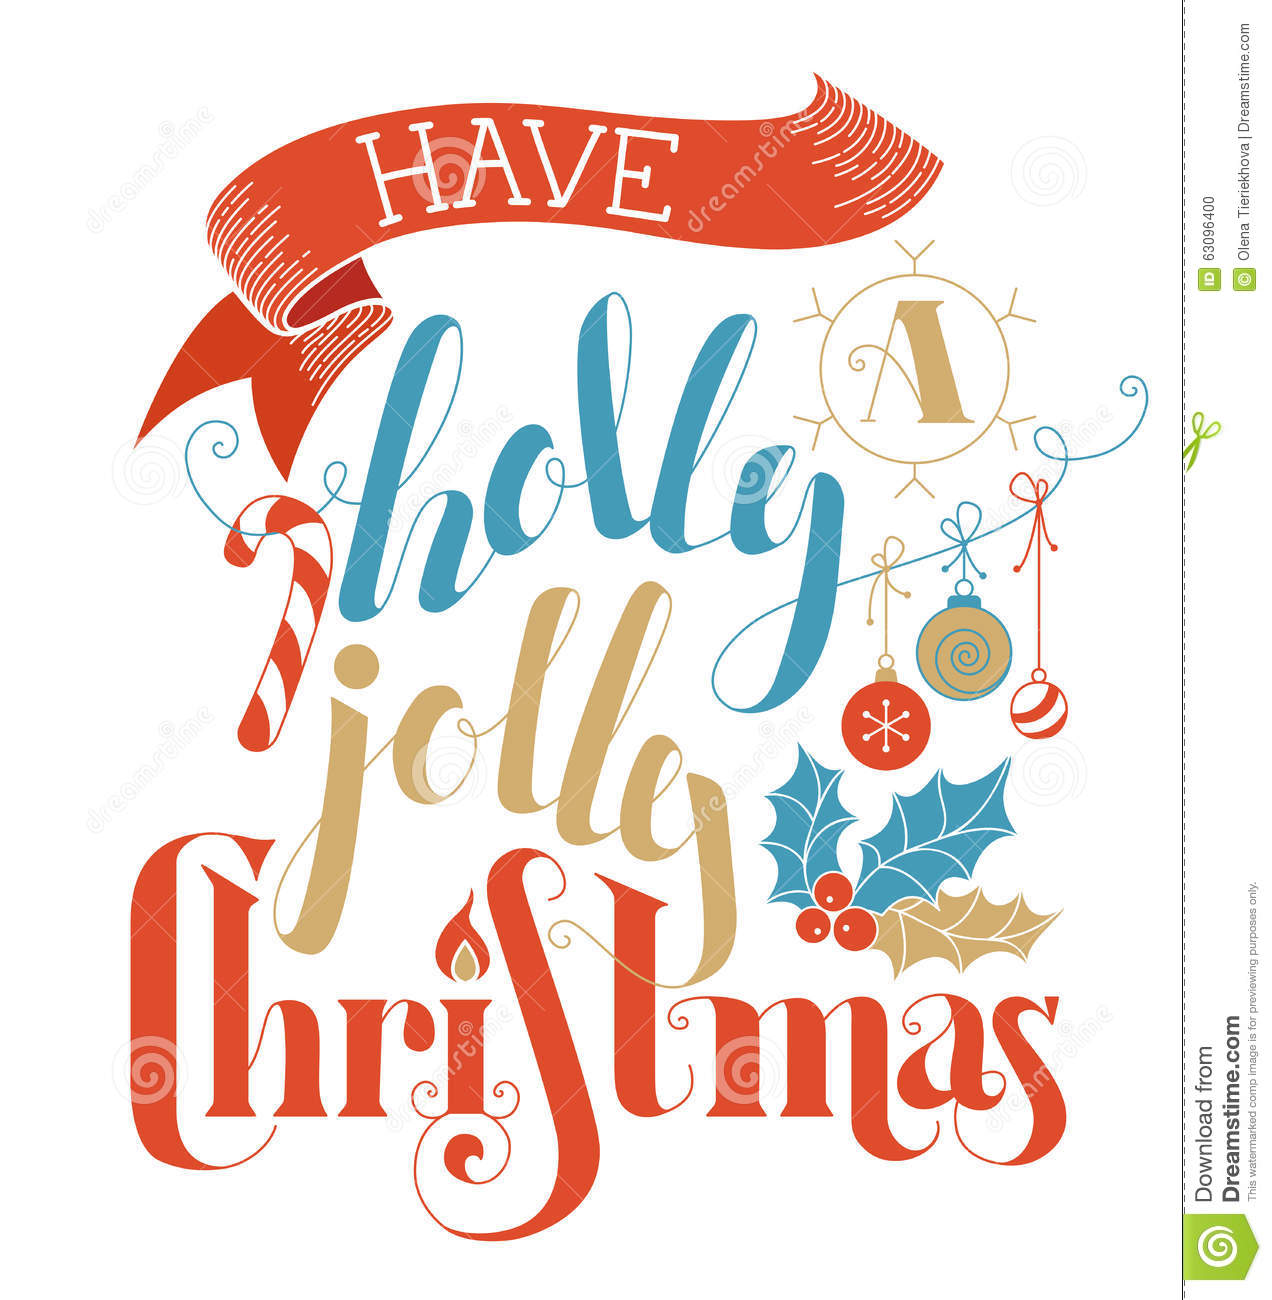 Have A Holly Jolly Christmas! Stock Vector - Illustration of festive ...